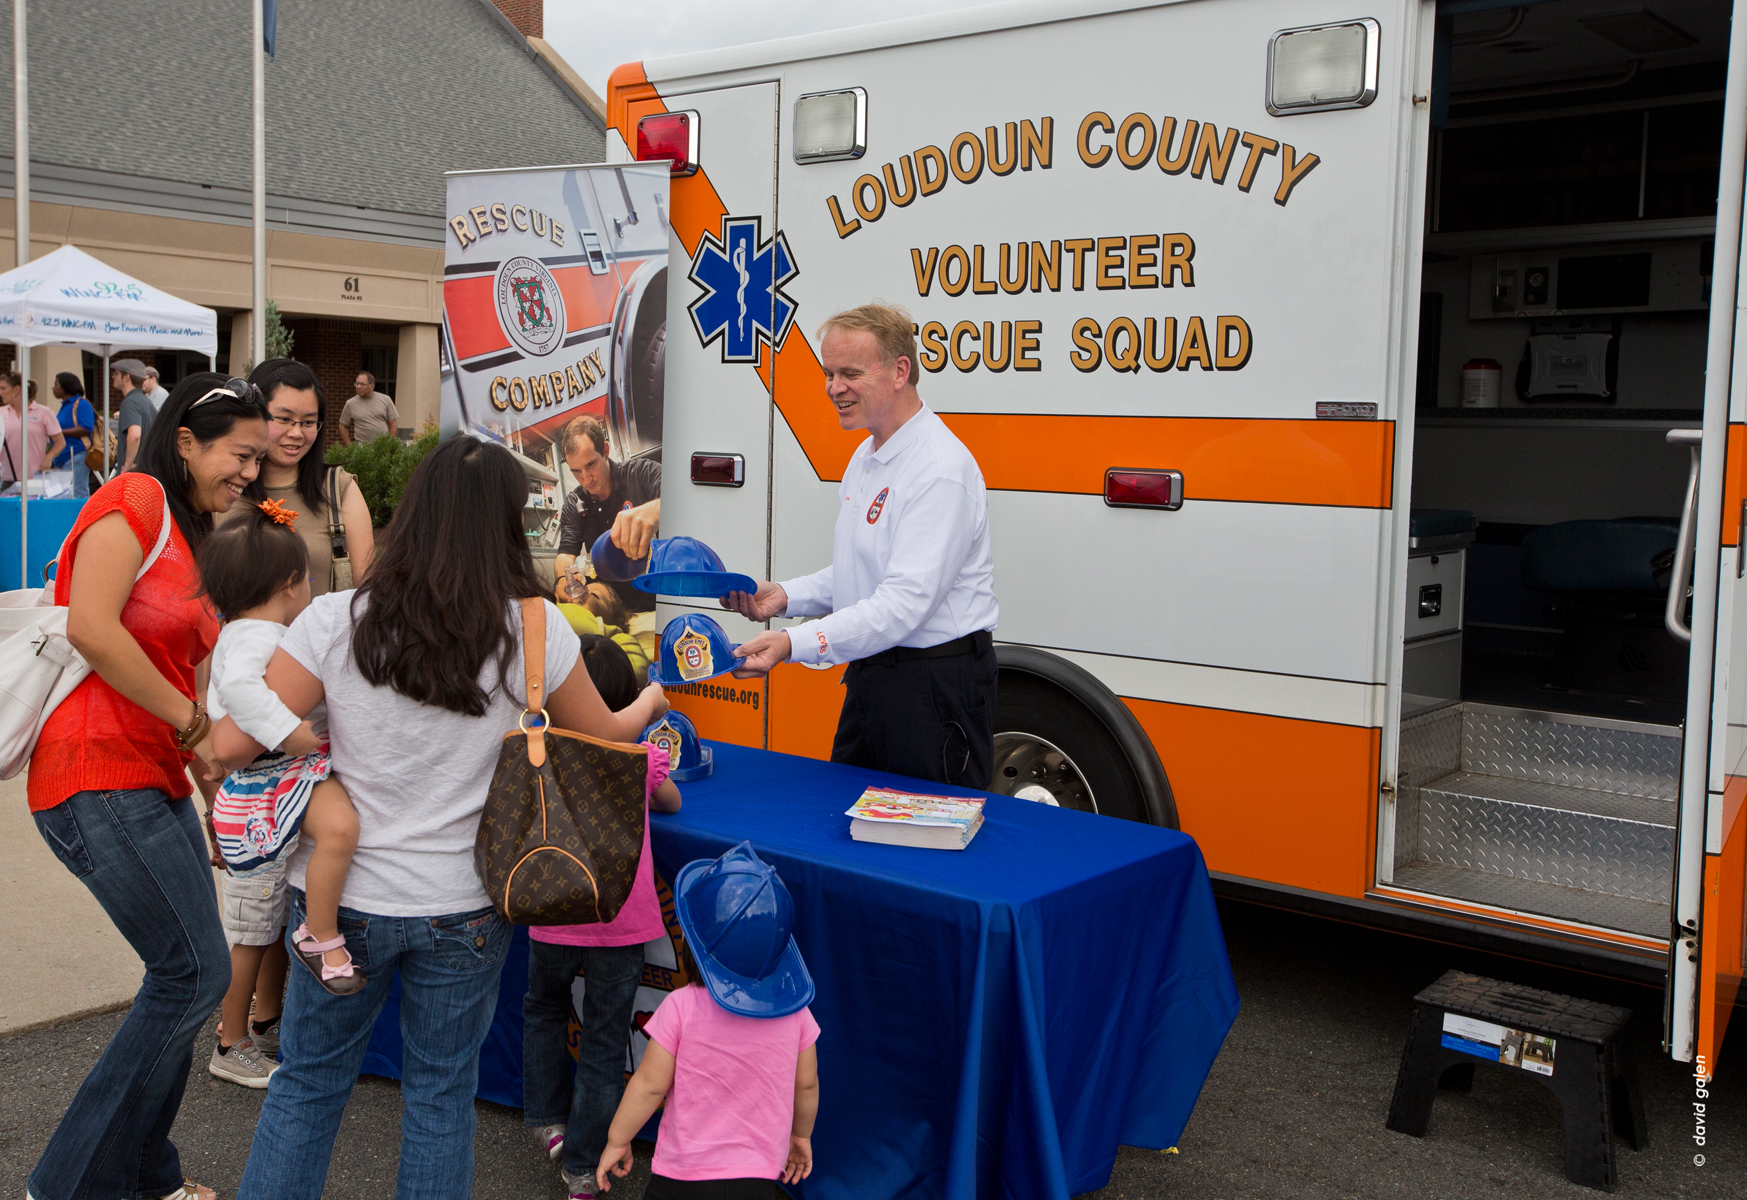 Lvfd Open House The Loudoun County Volunteer Rescue Squad